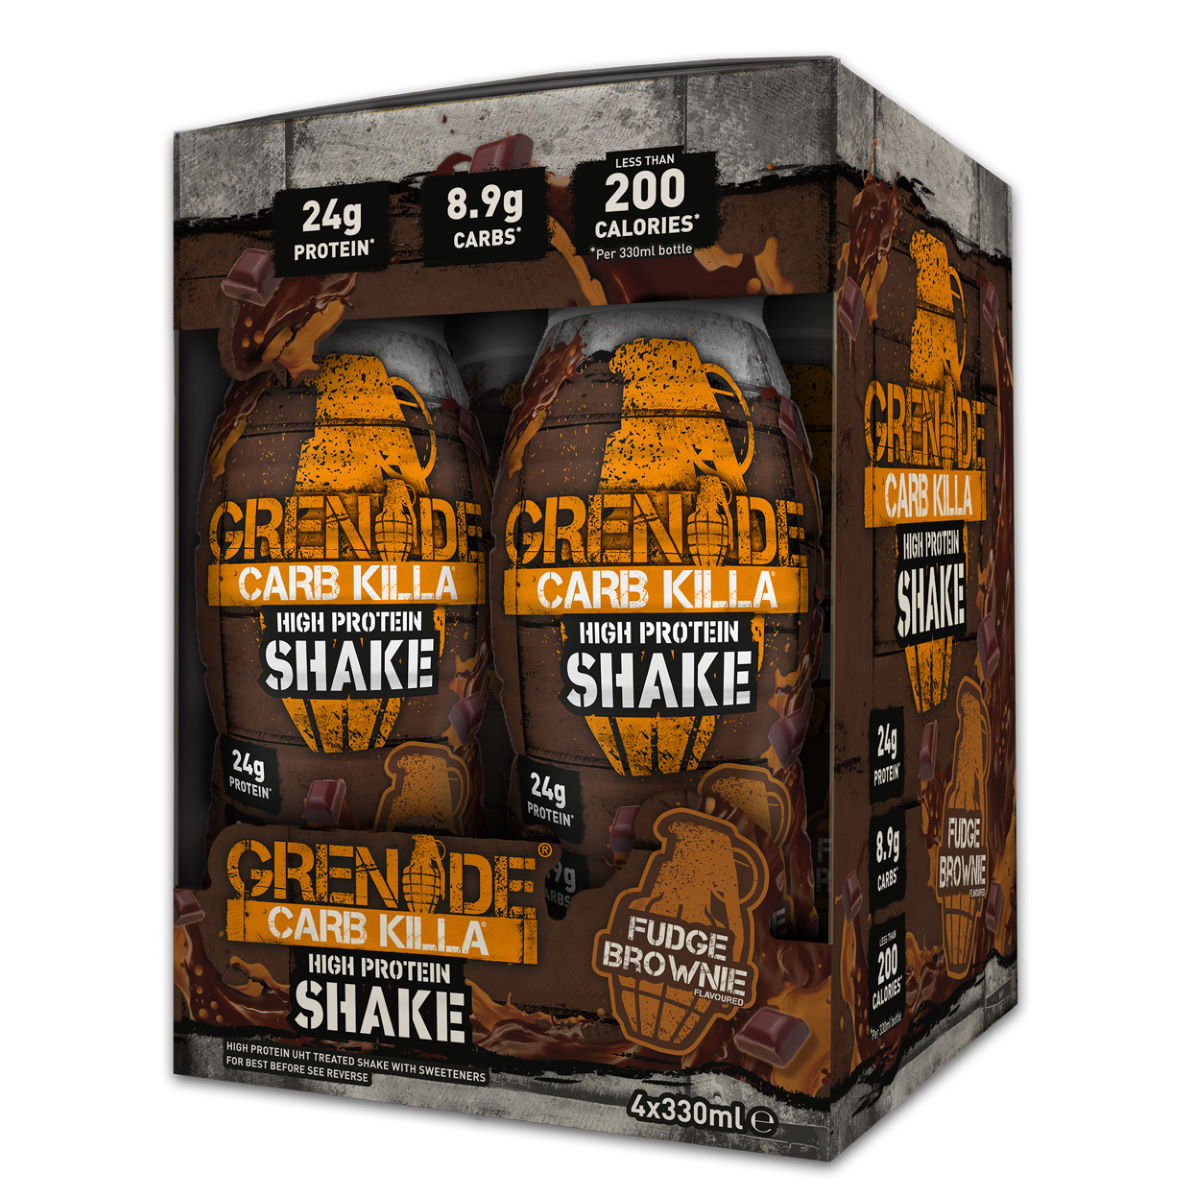 Shake Grenade Carb Killa High Protein - 330ml 4 Fudge Brownie